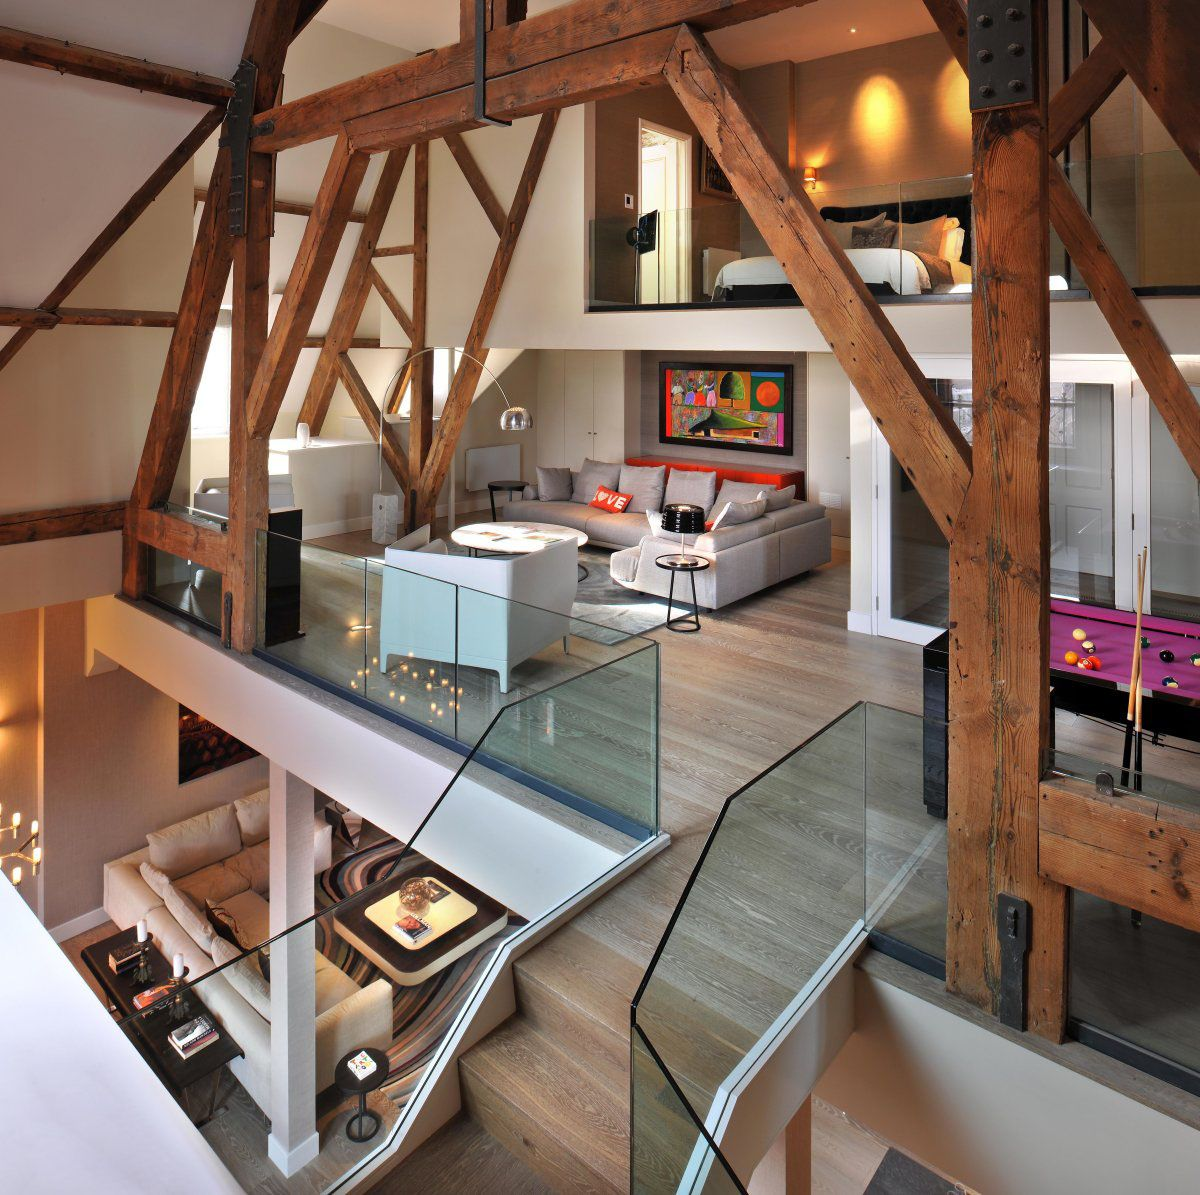 1 bedroom loft apartment  Modern London Loft Apartment  Homes  Pinterest  Lofts Penthouses